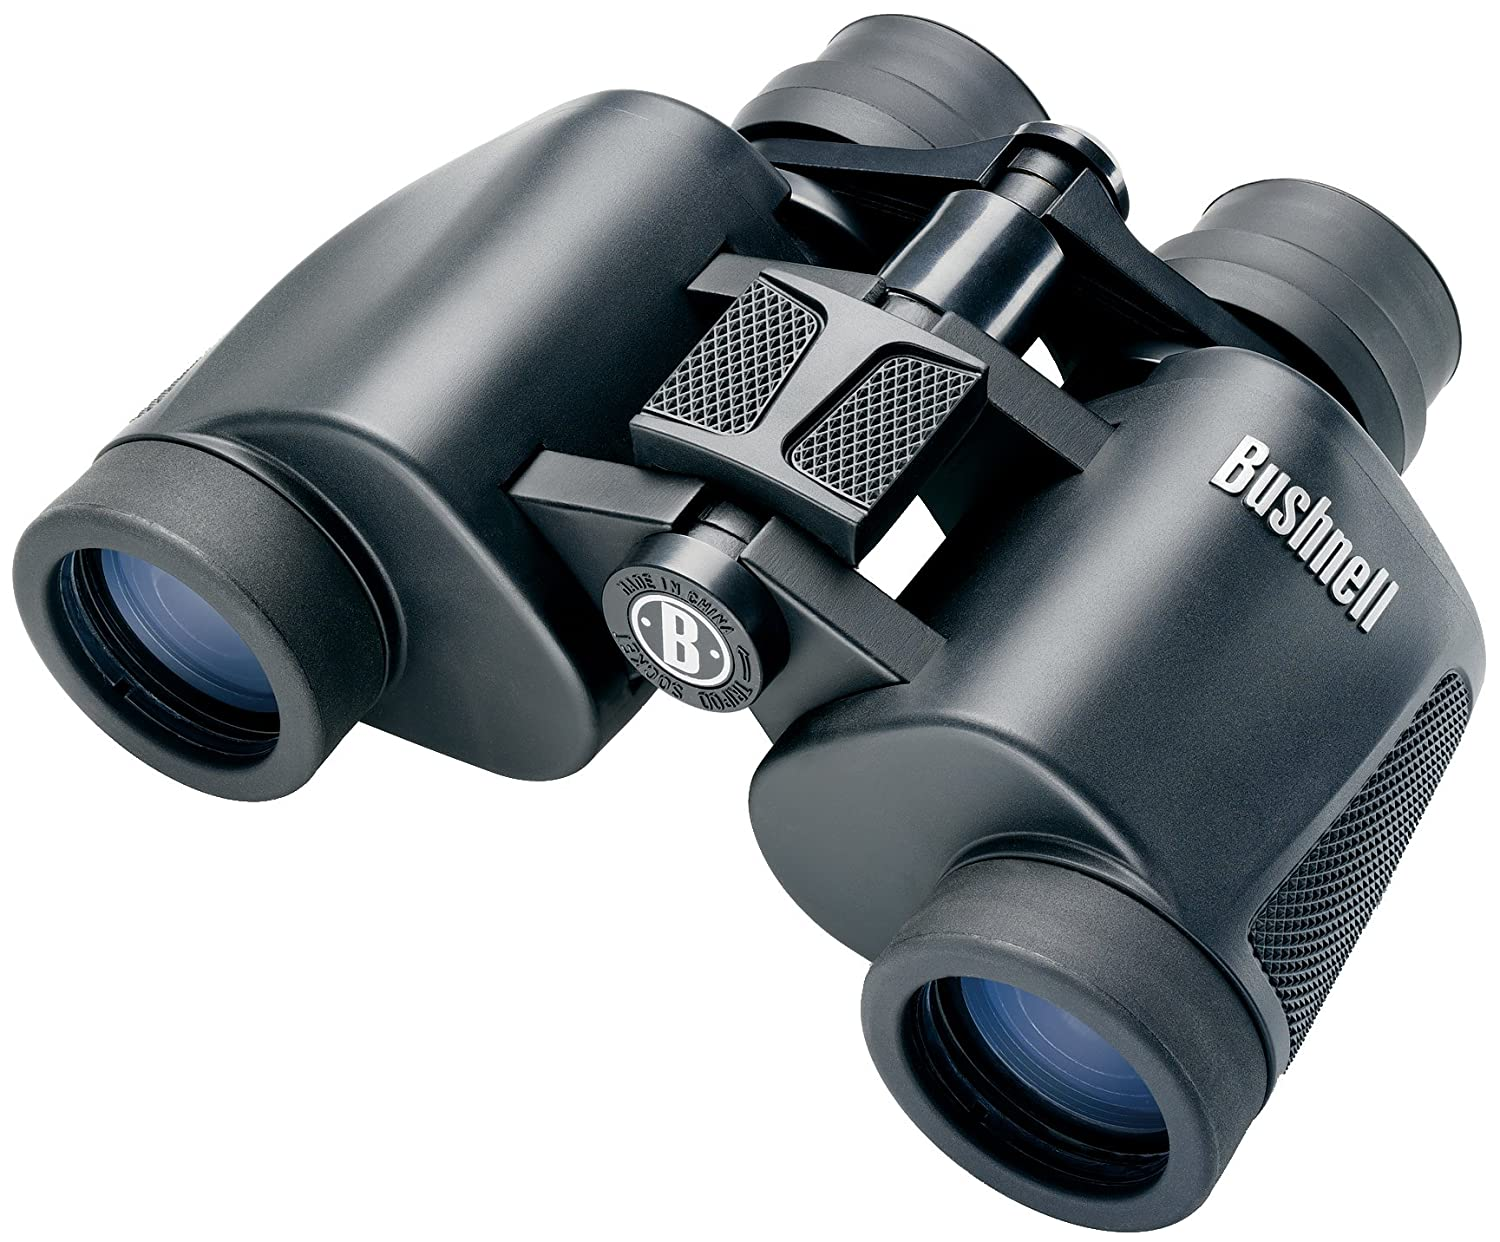 Amazon.com: Bushnell Powerview 7x35 Porro Bk-7 Prism Rubber Armored  Binoculars, Black, Box Pack 13-7307: Sports & Outdoors